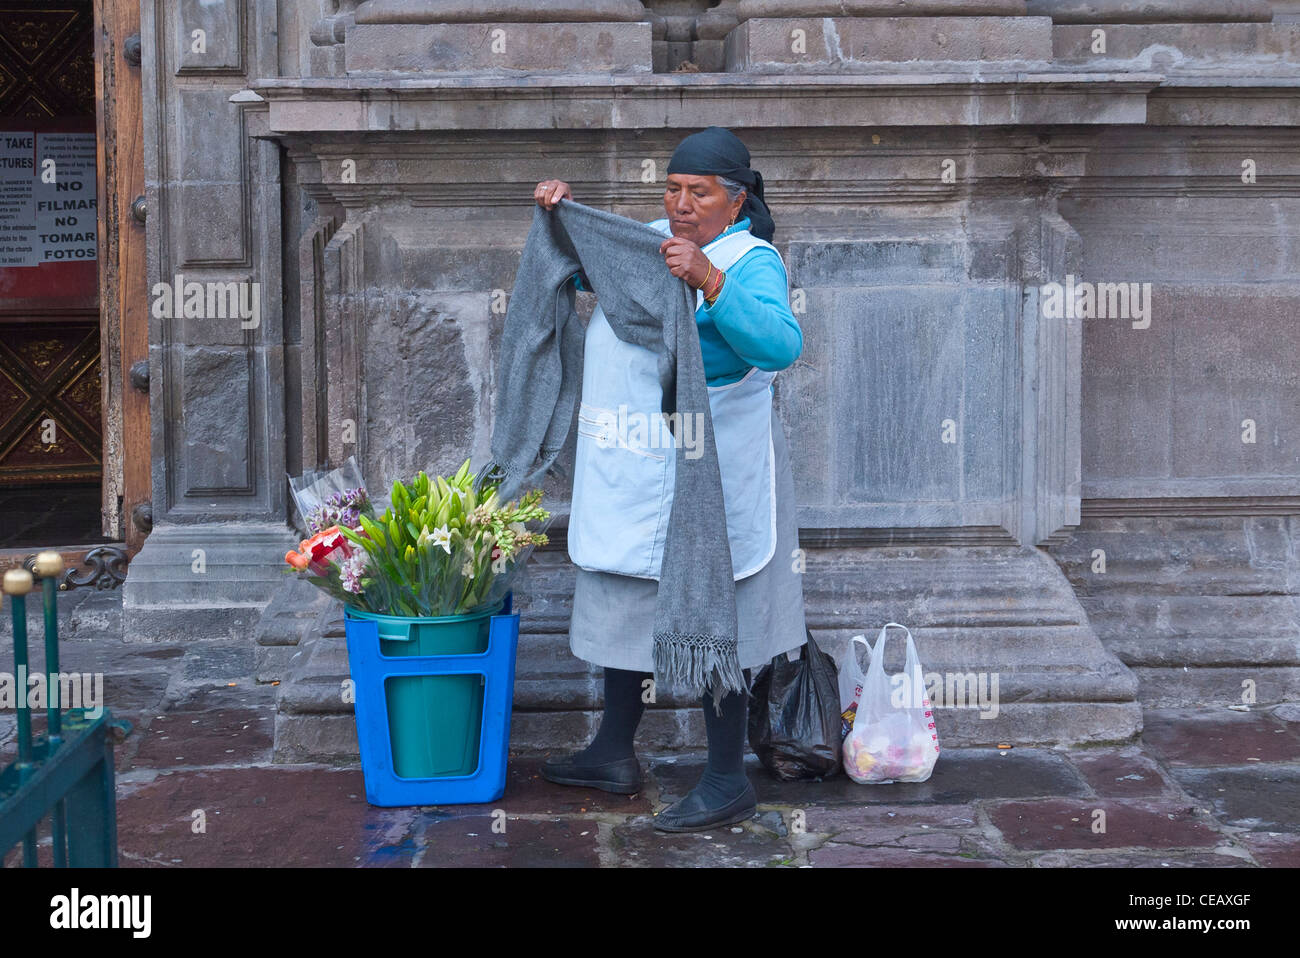 A 60-70 year old indigenous Indian woman prepares to sell her fresh flowers on the street outside a church in Quito, Ecuador. Stock Photo